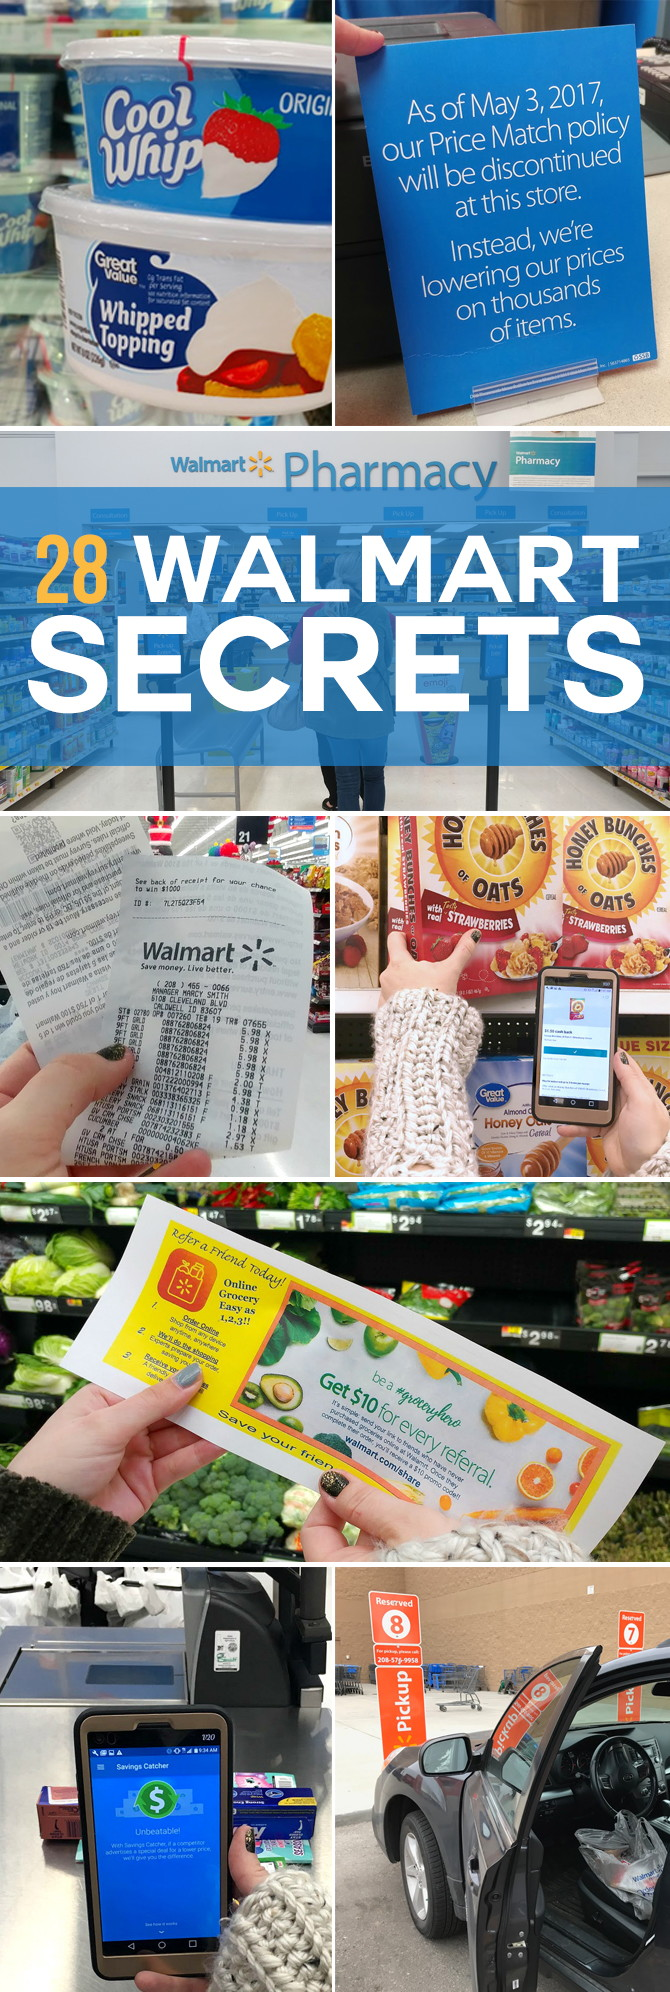 bb00f4d5a080 28 Little-Known Walmart Secrets from a Store Manager - The Krazy ...